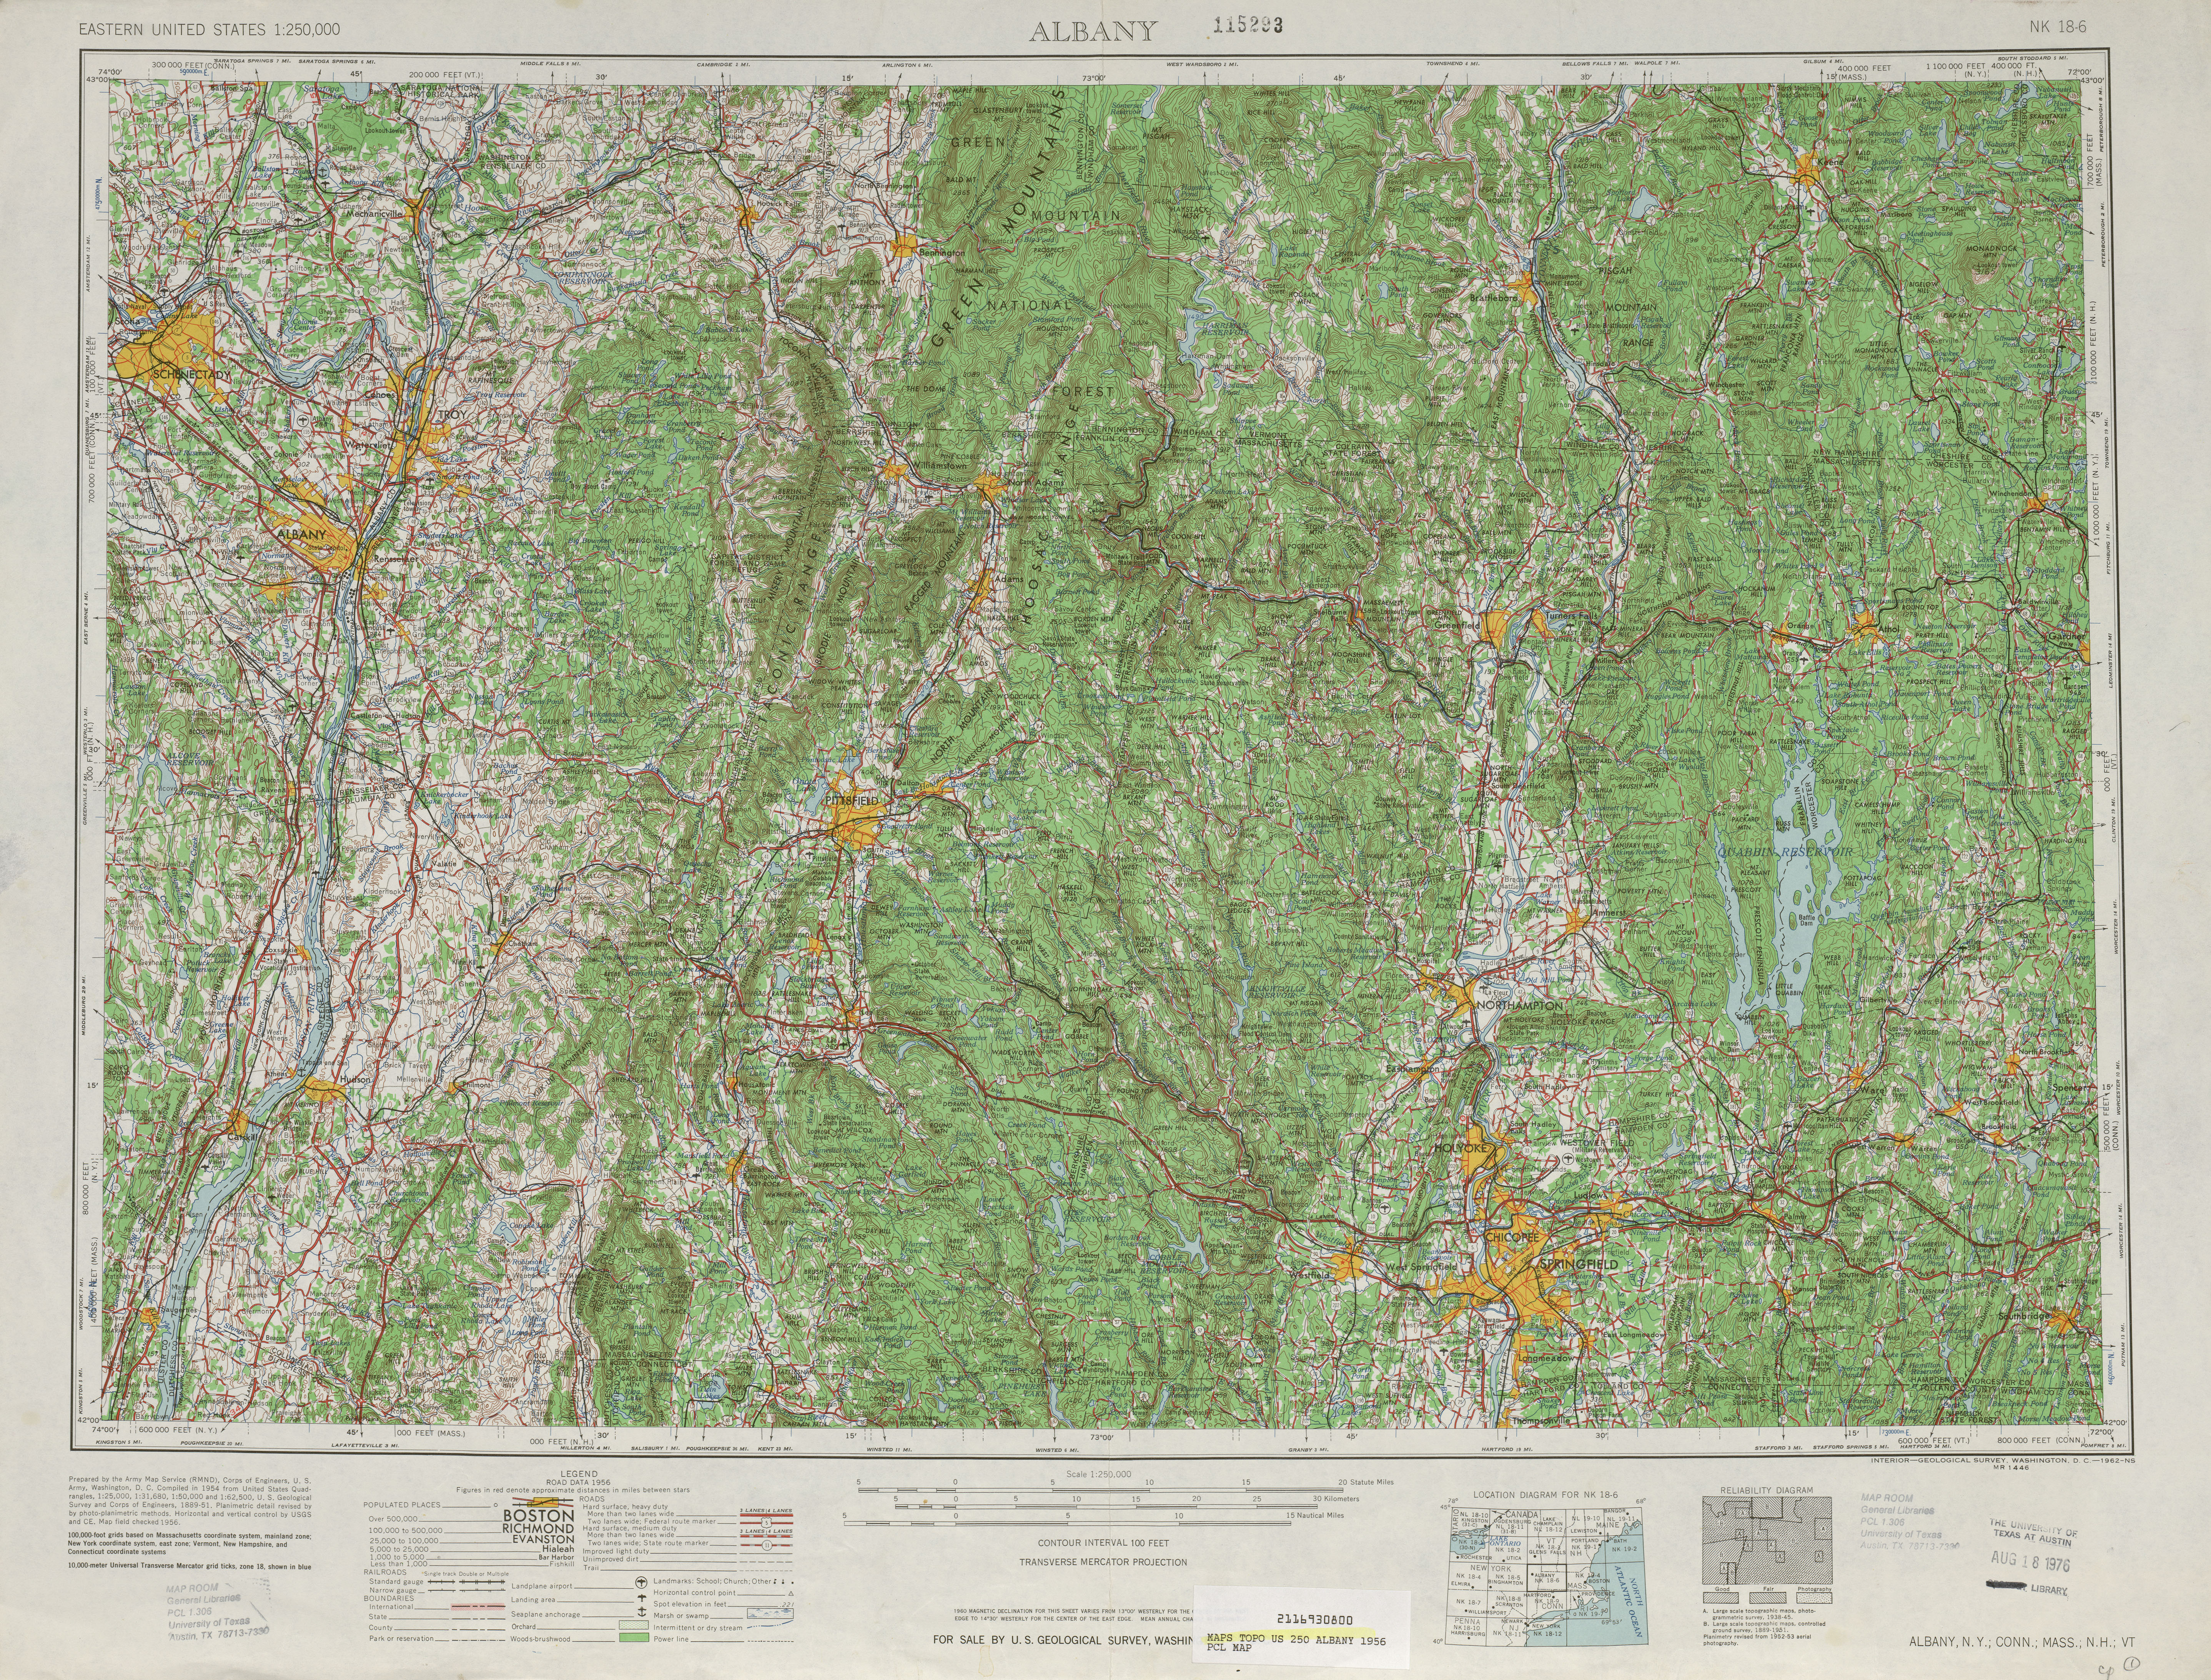 Albany Topographic Map Sheet, United States 1956